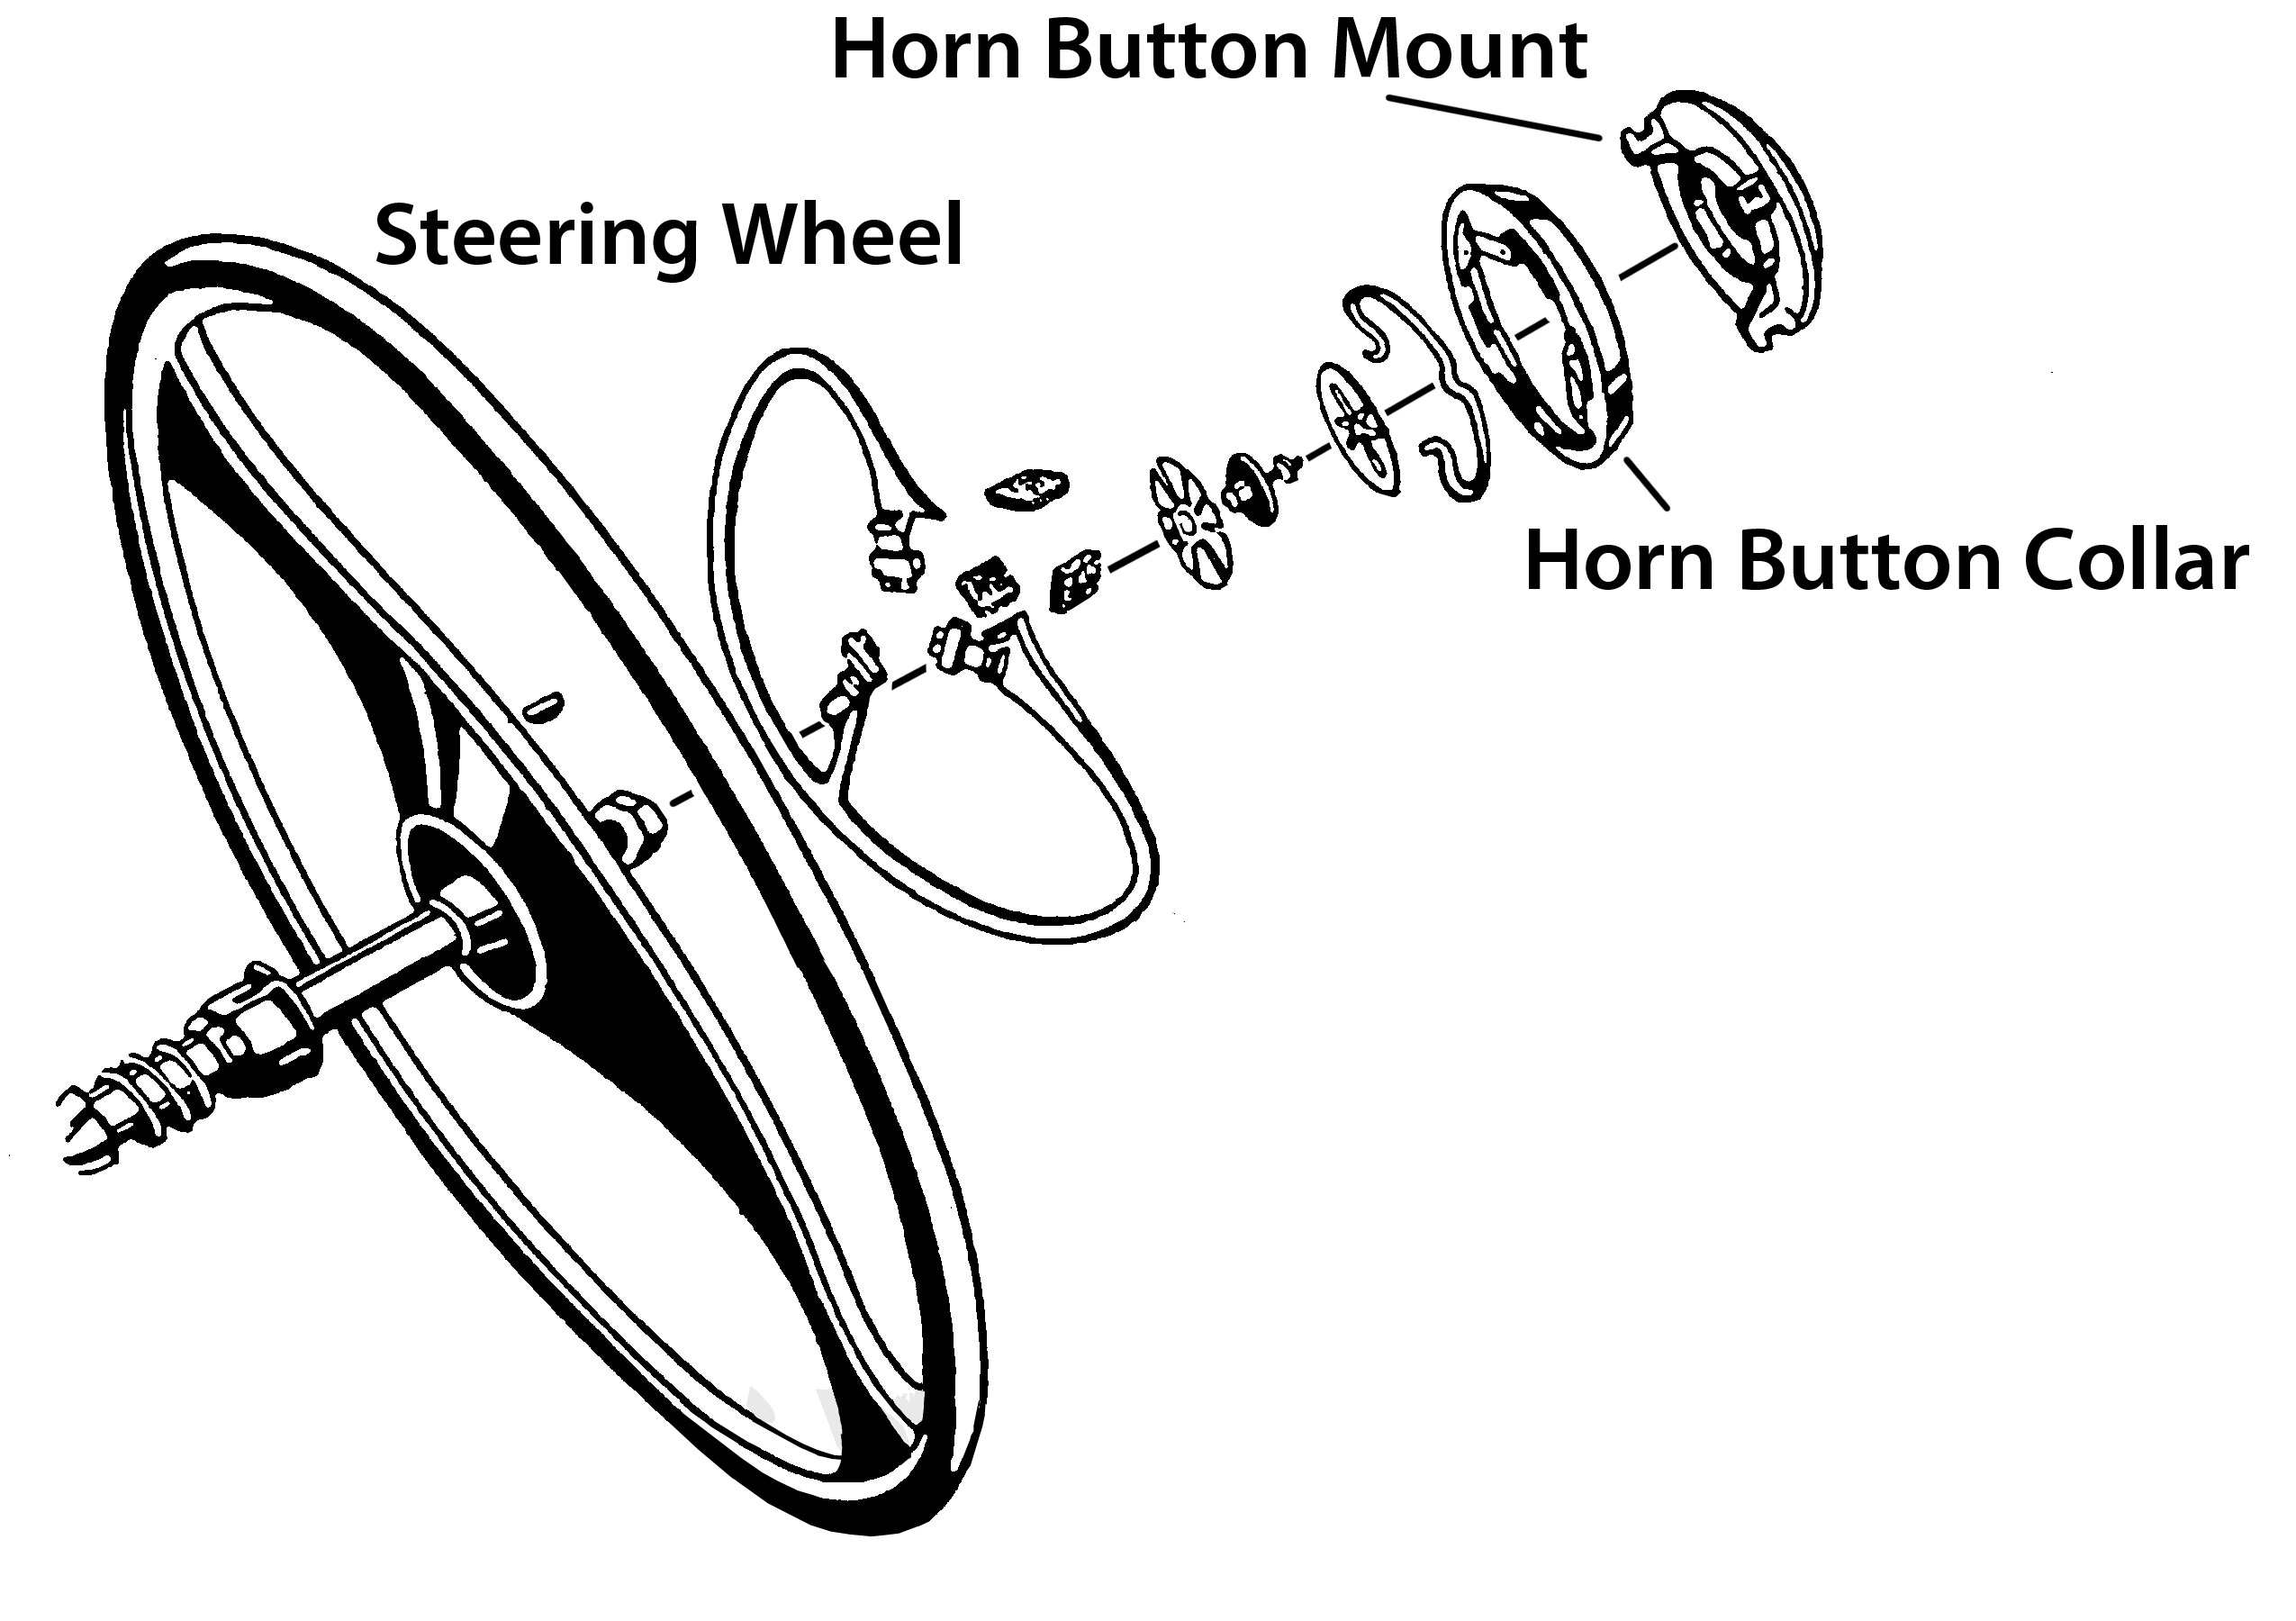 Horn Button Diagram Online Manuual Of Wiring Lincoln Zephyr What Holds In On 41 Lc Steering Wheel Rh Forums Aaca Org 1968 Camaro